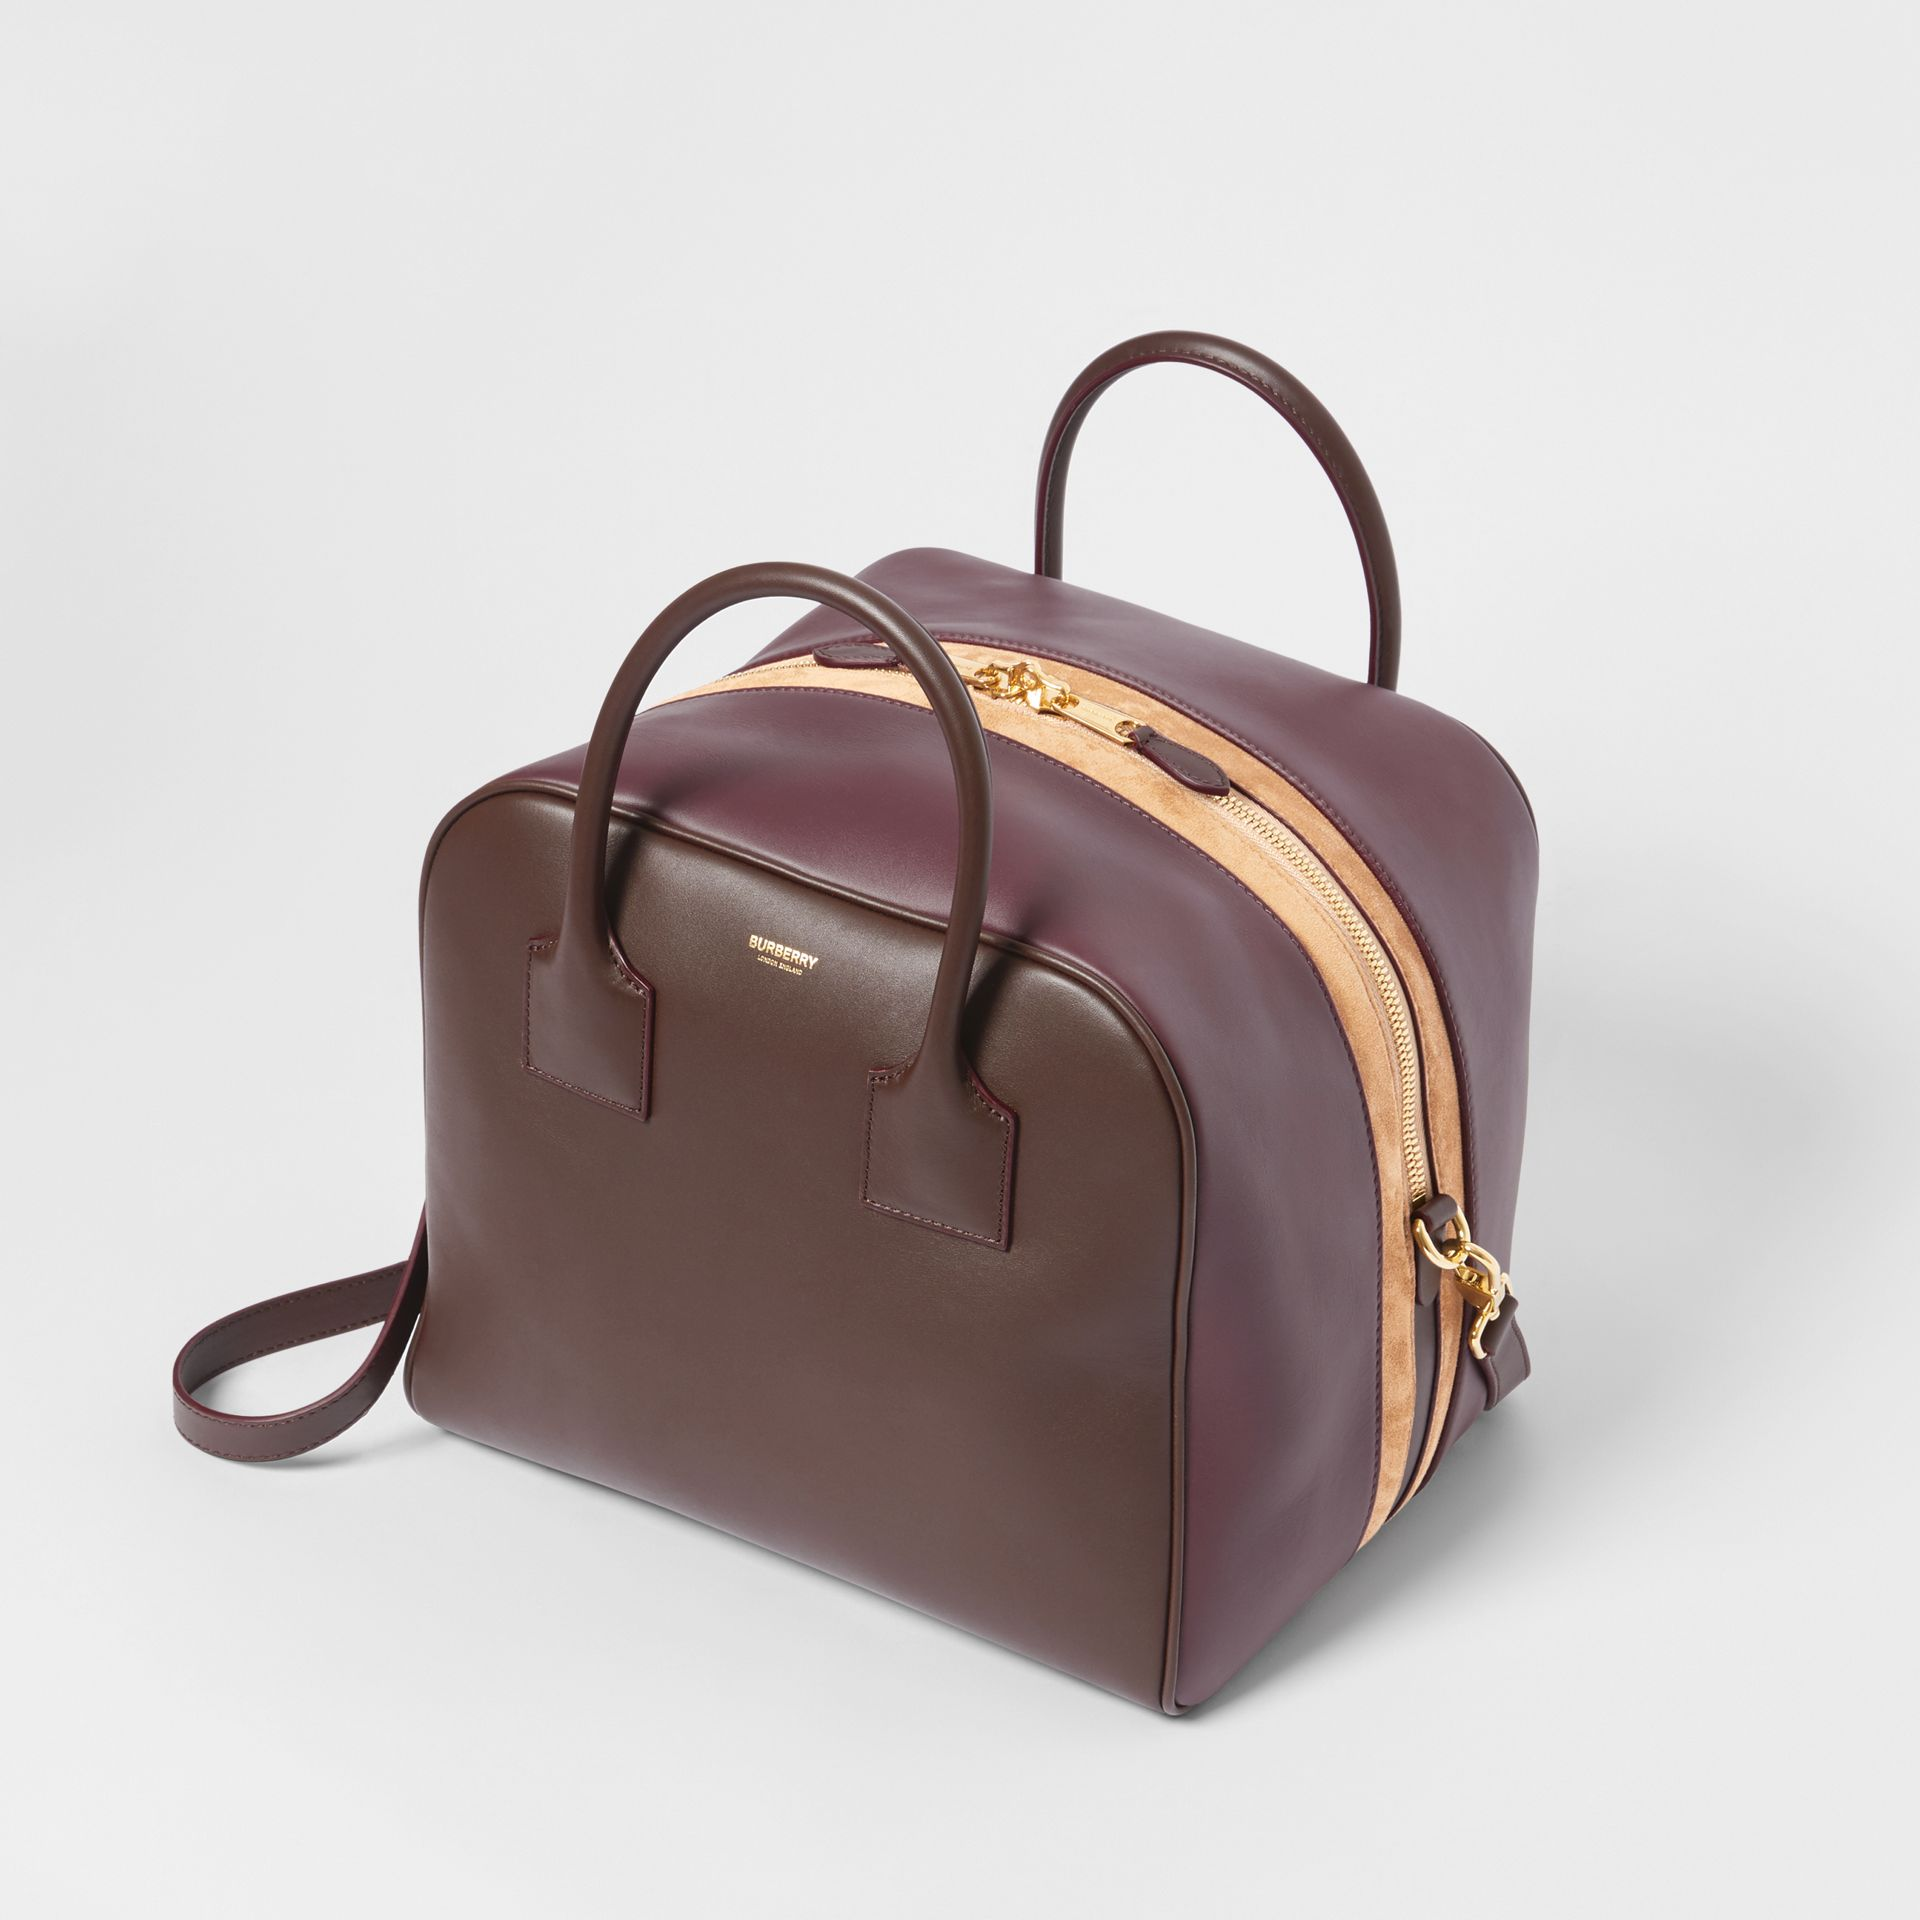 Medium Leather and Suede Cube Bag in Mahogany - Women | Burberry - gallery image 3